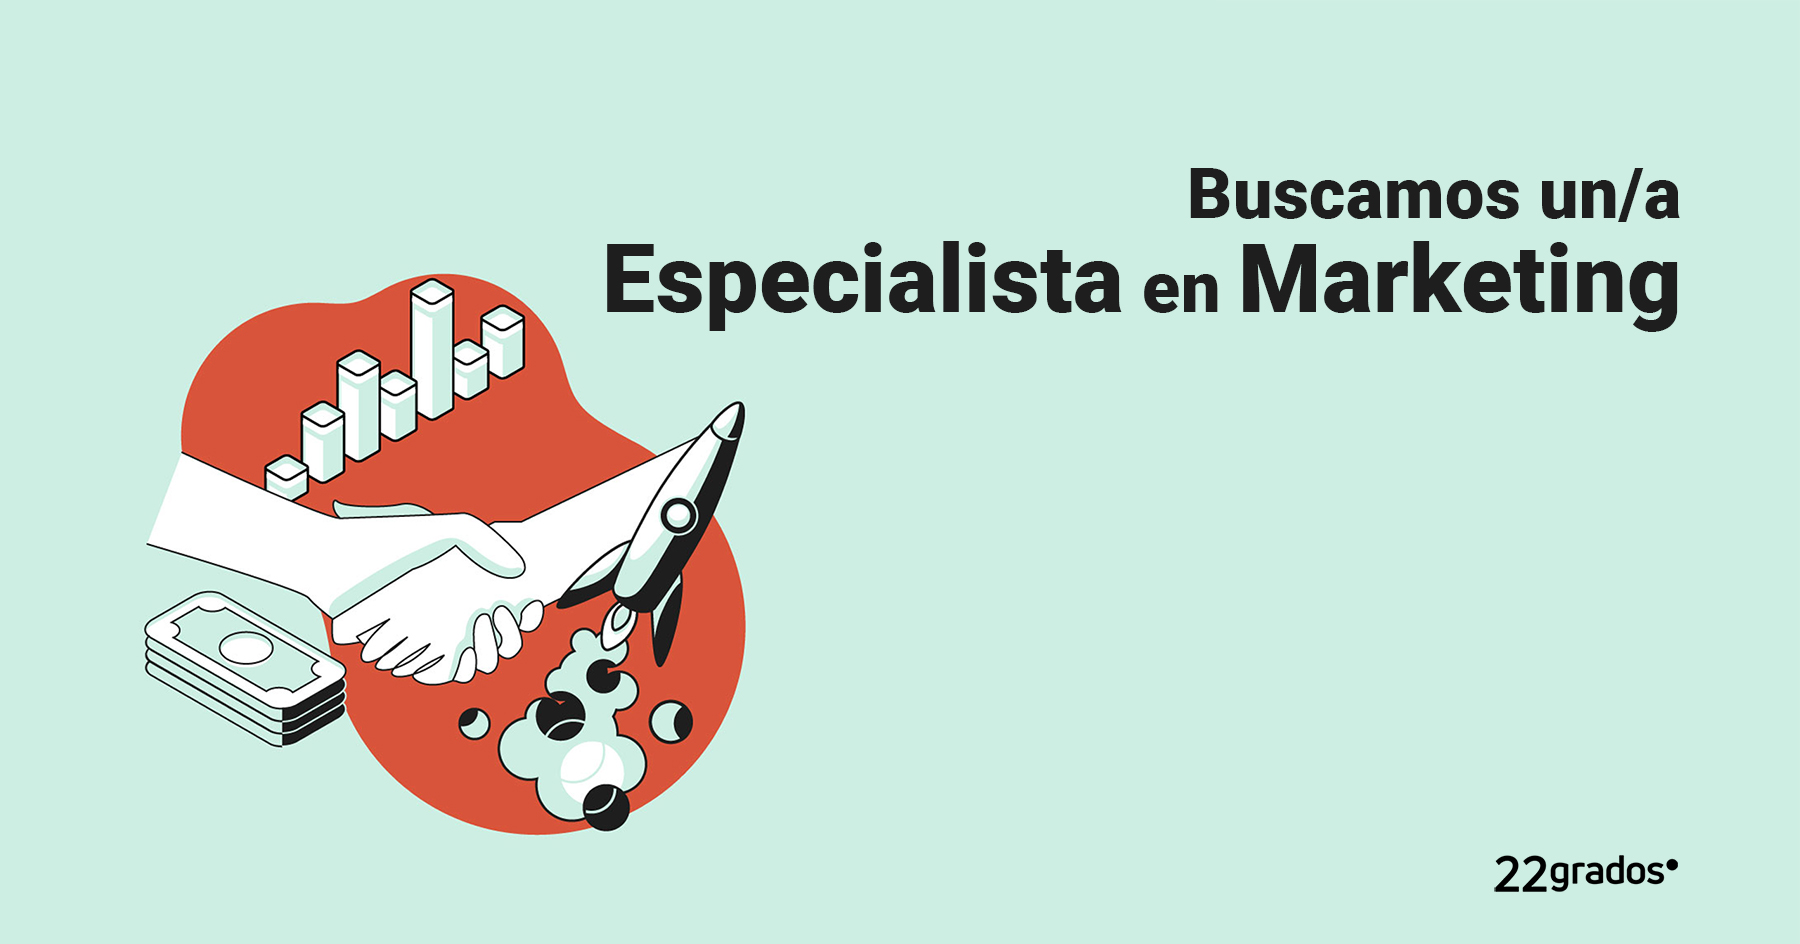 Buscamos un Especialista en Marketing